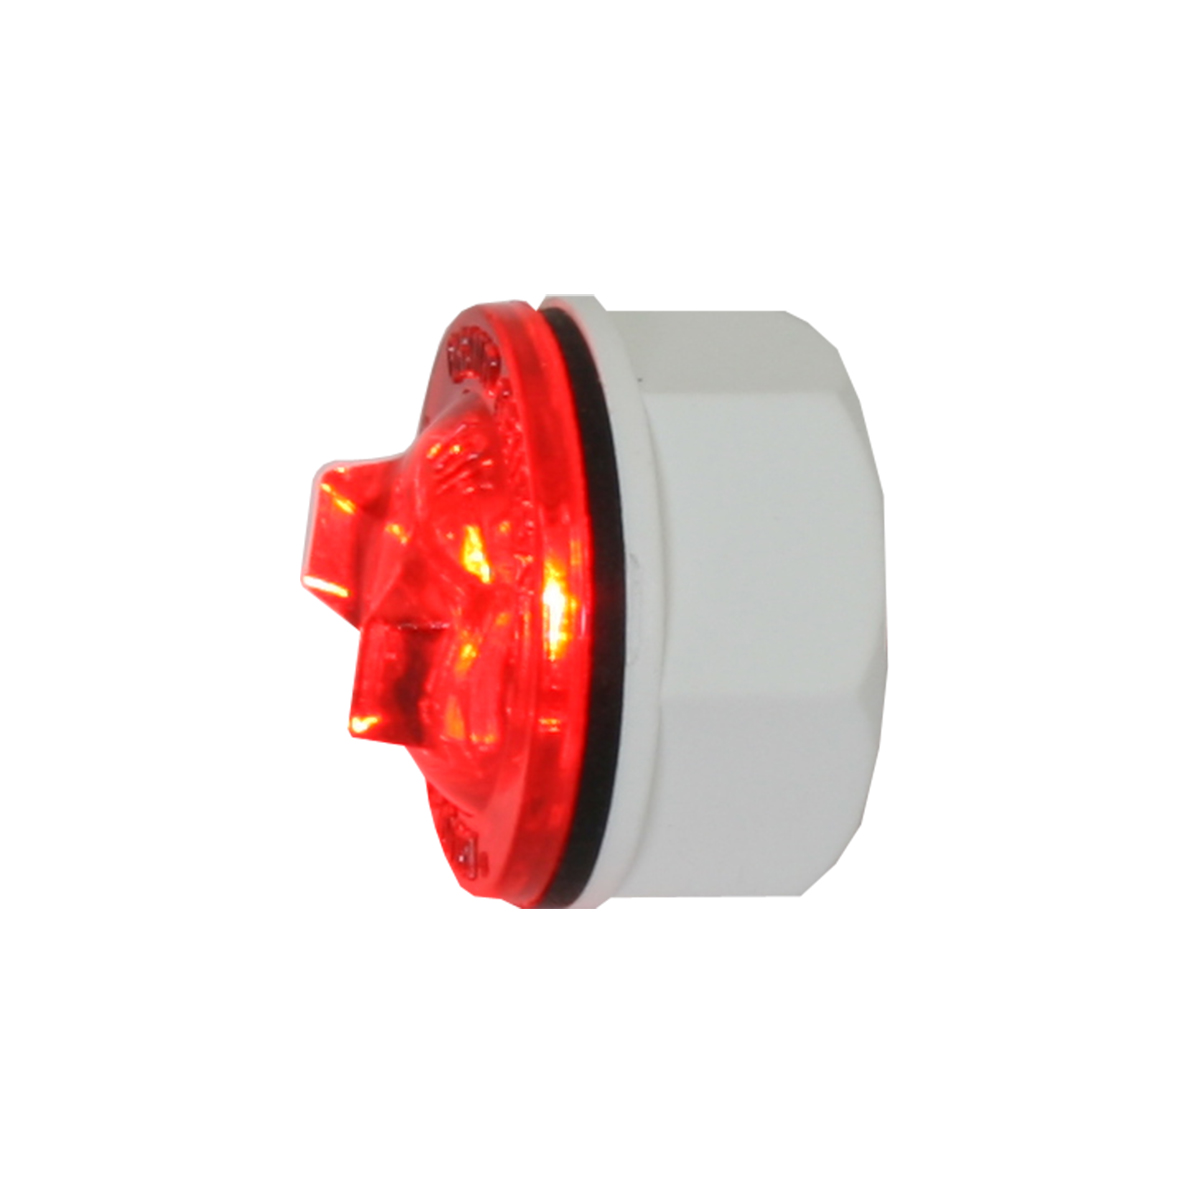 "87282 1"" Mini Push/Screw-in Wide Angle LED Light"